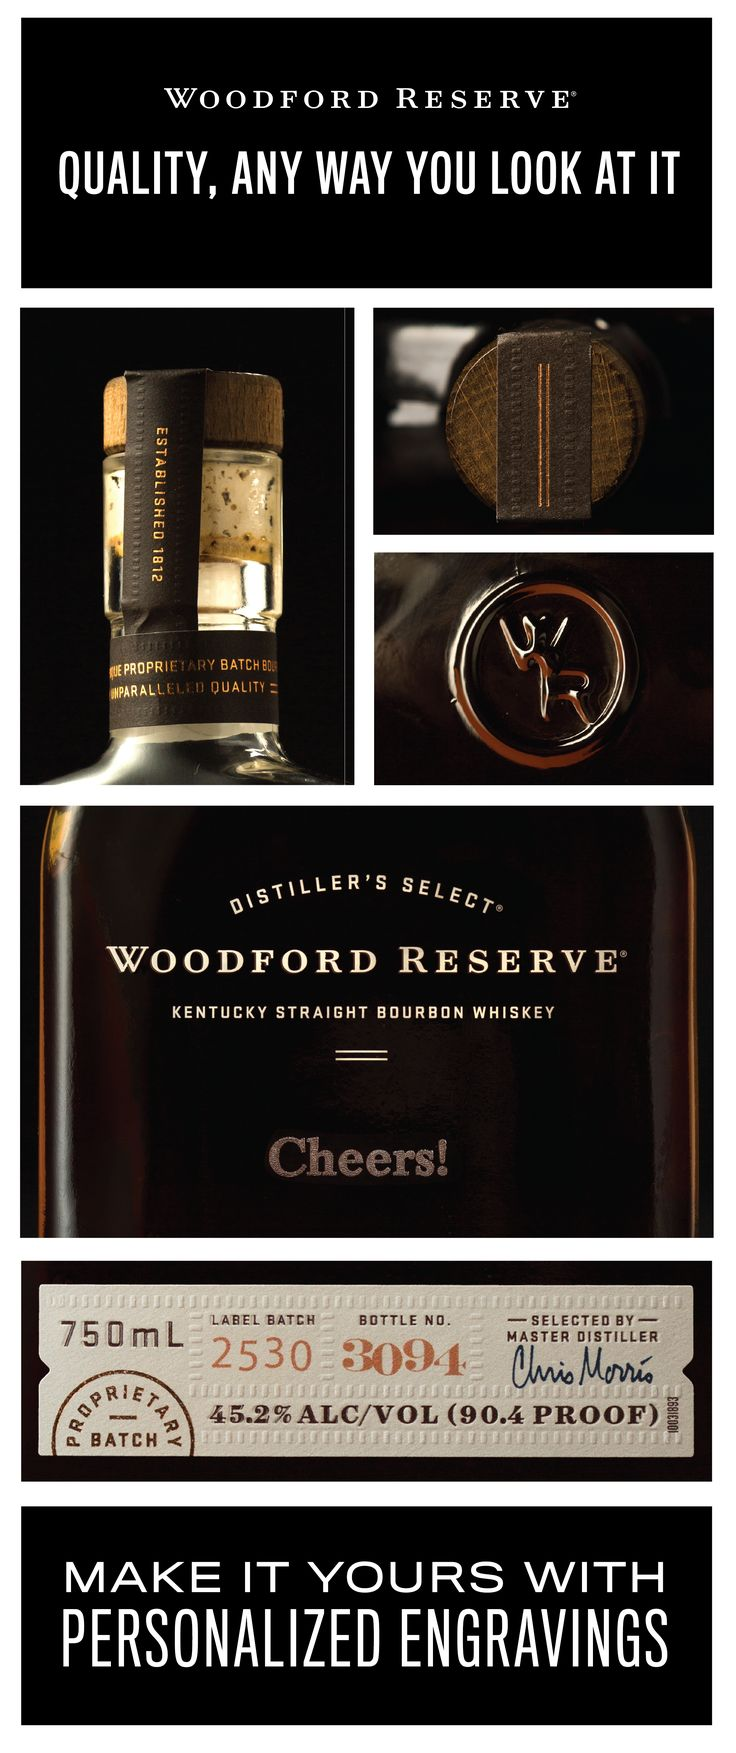 An engraved bottle of Woodford Reserve makes for the perfect holiday gift for the bourbon lover on your list. Order by December 18th to guarantee delivery in time for the holidays.